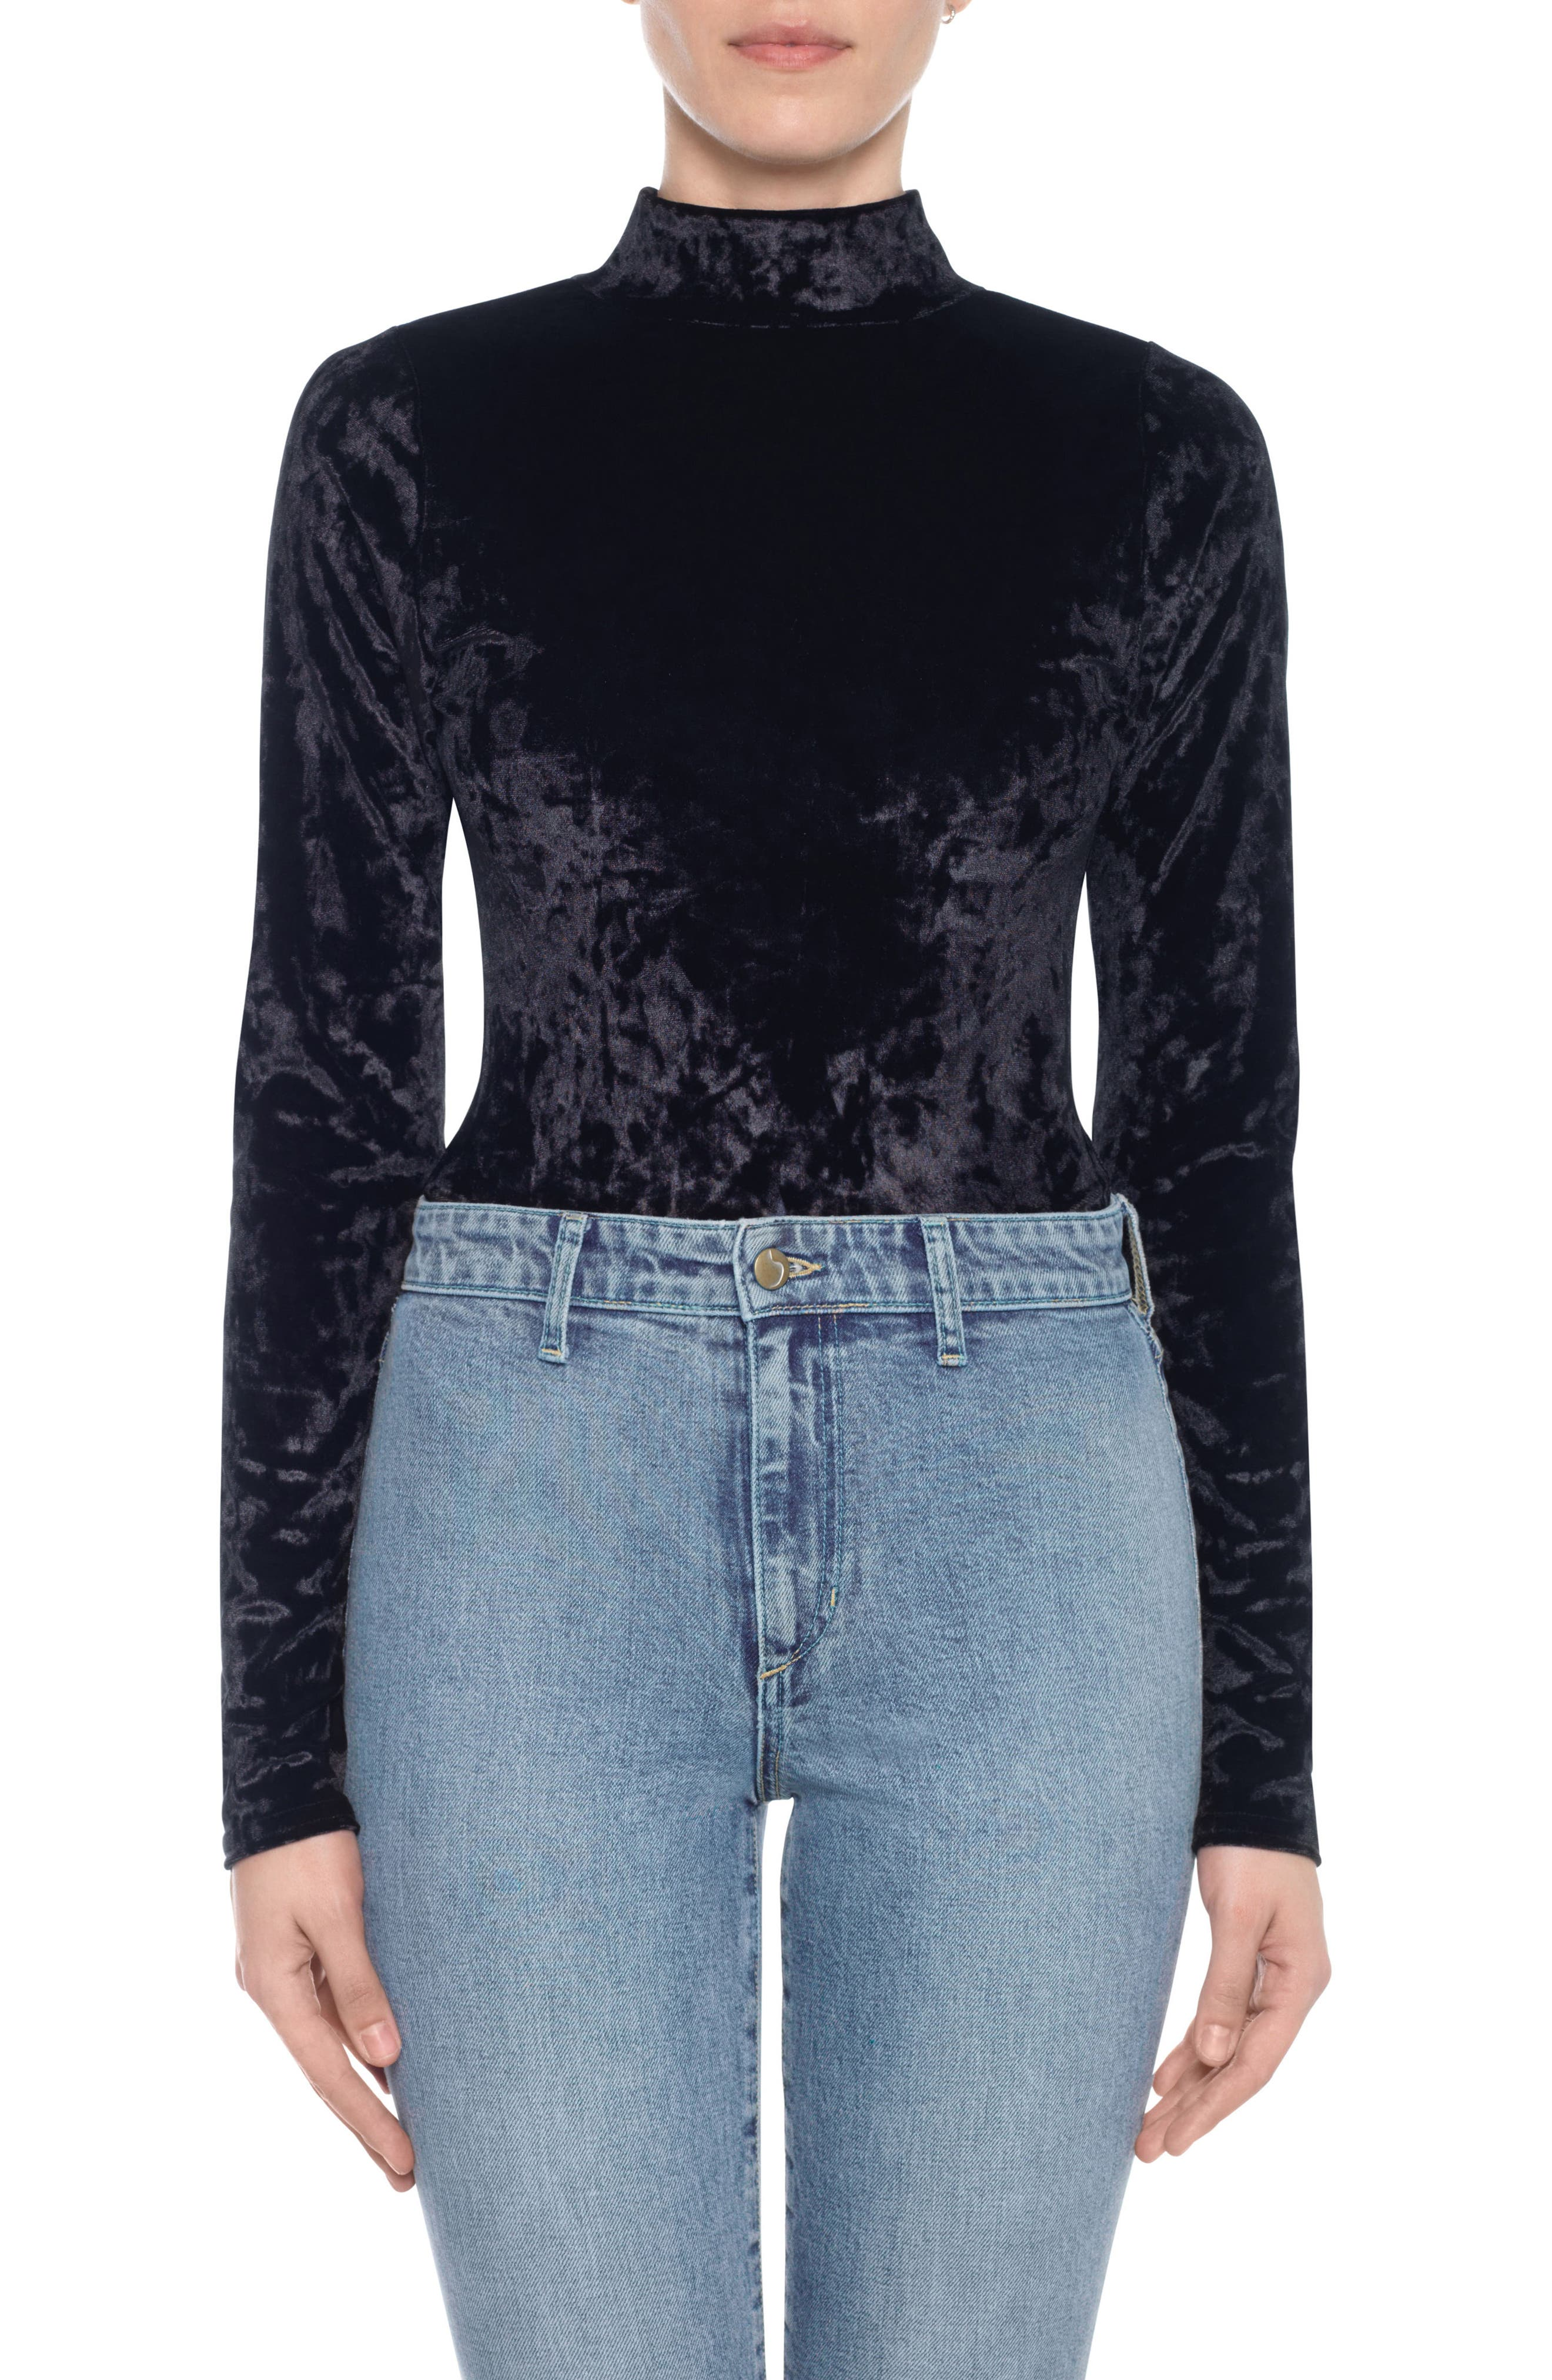 Taylor Hill x Joe's Mock Neck Velvet Bodysuit,                         Main,                         color, Black